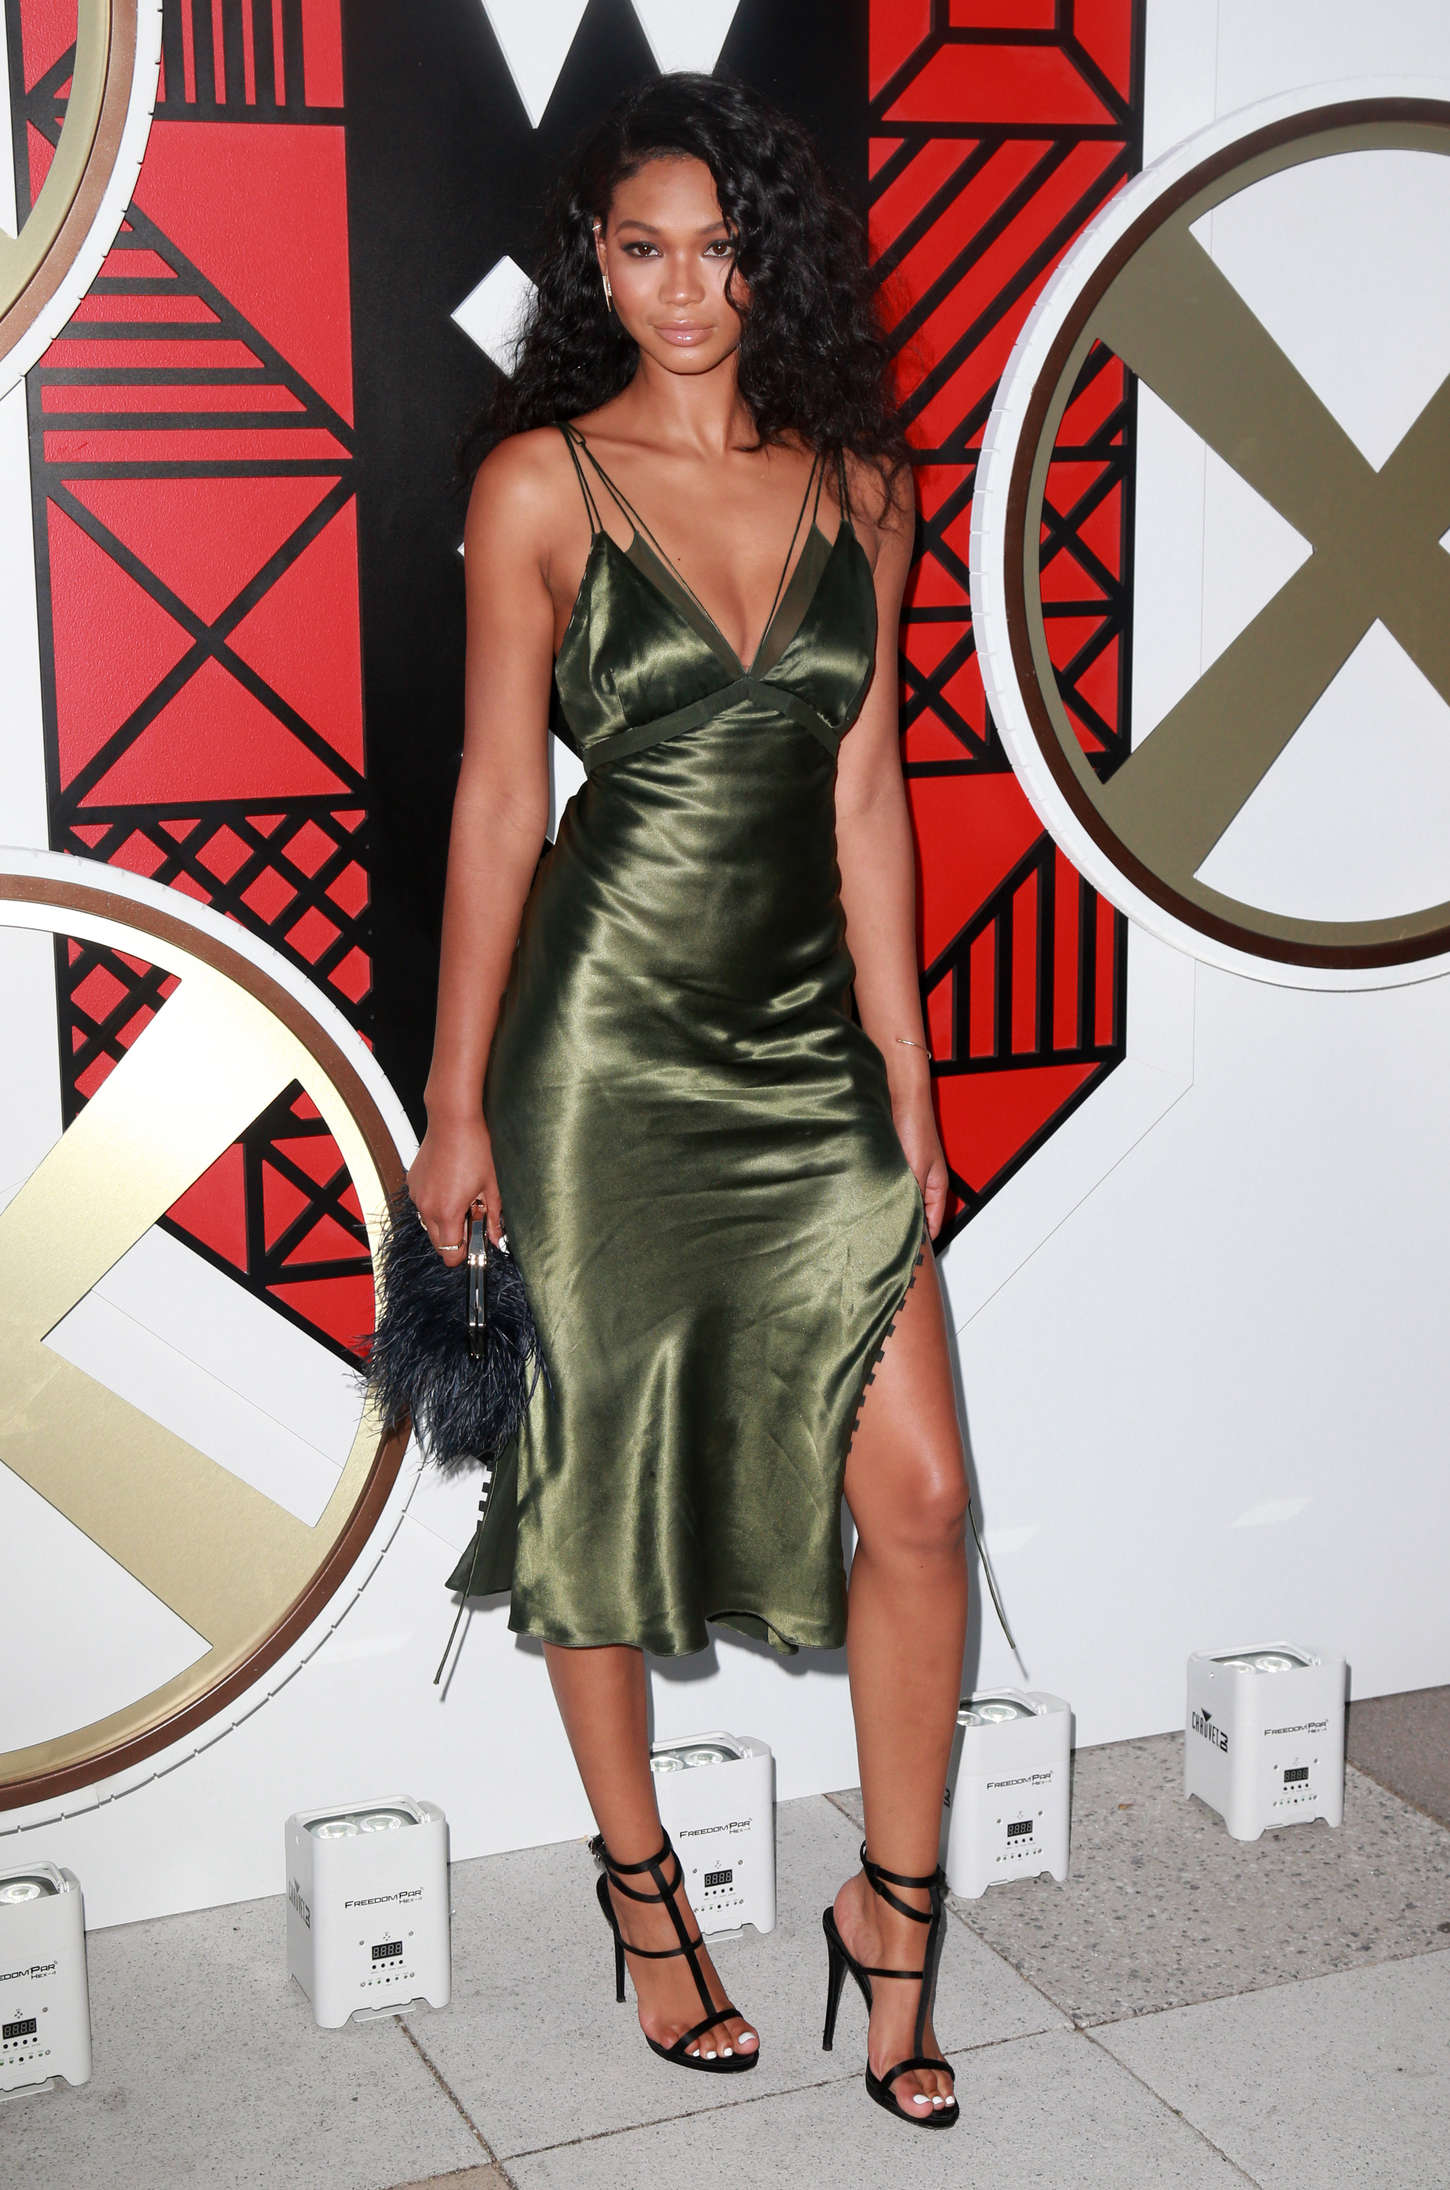 Chanel Iman All Aboard! W Hotels Toasts The Upcoming Opening Of W Amsterdam in New York